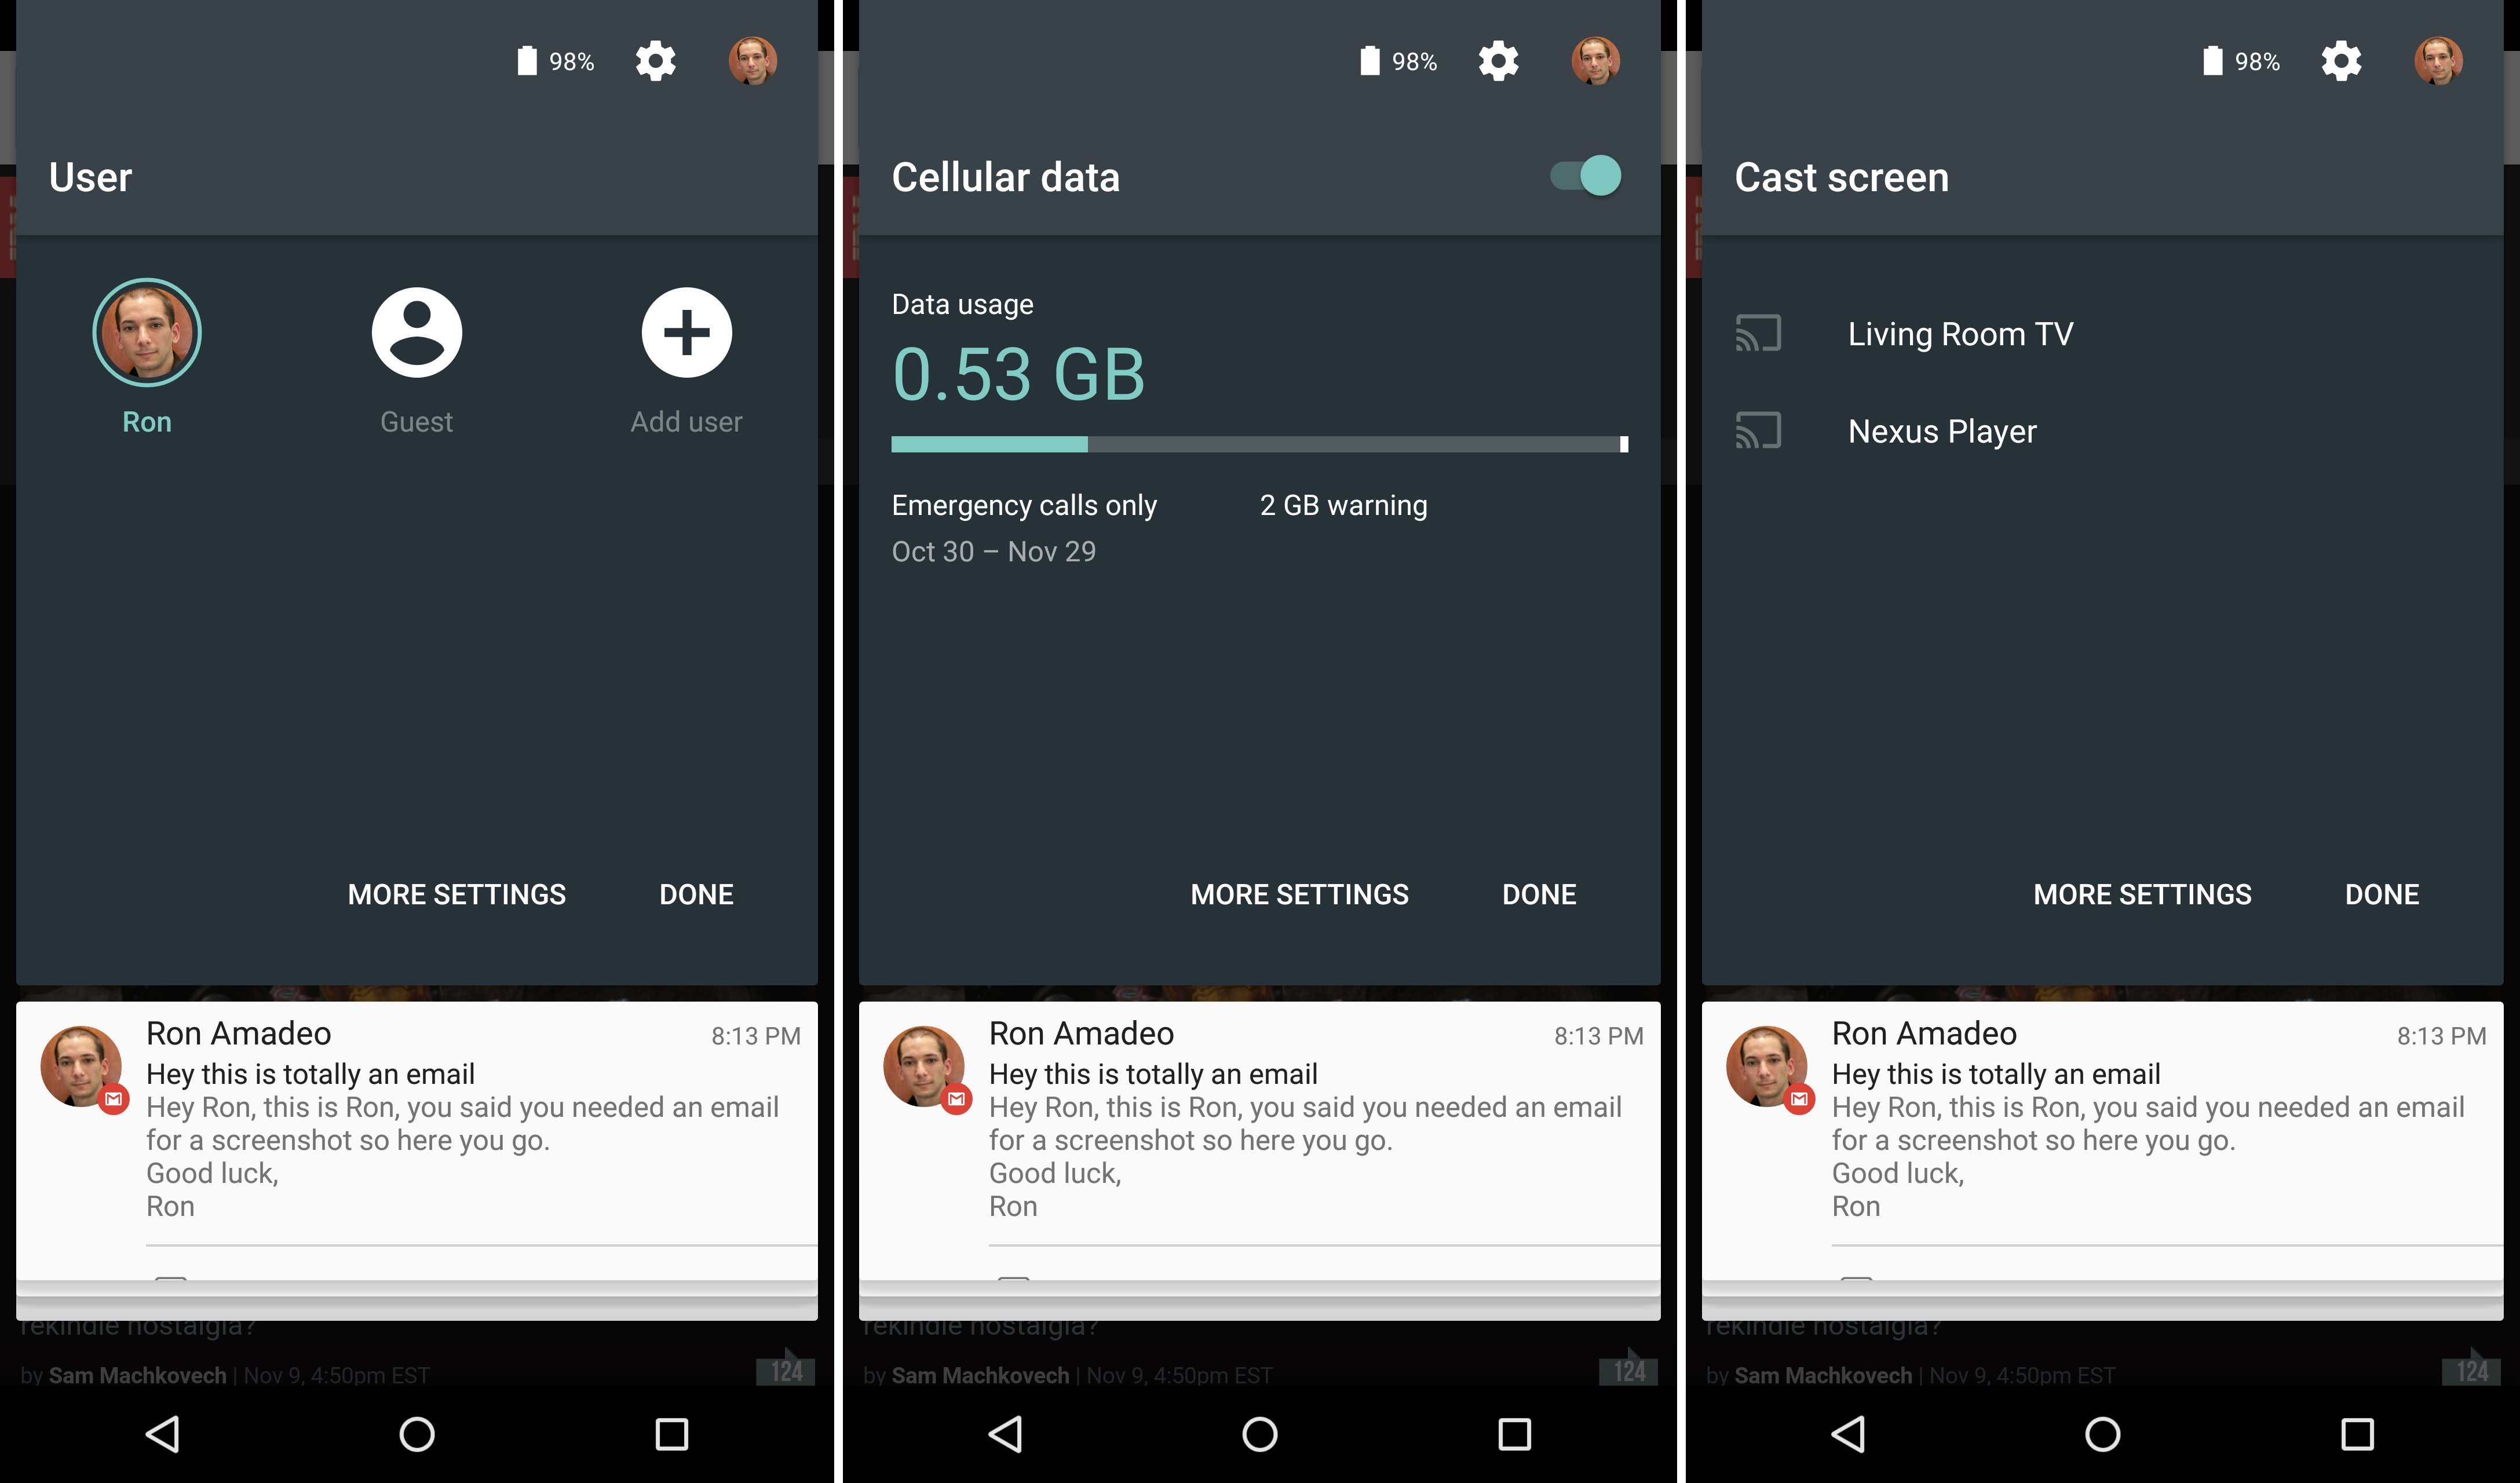 Quick settings panels for user switching, data usage, and screen casting.